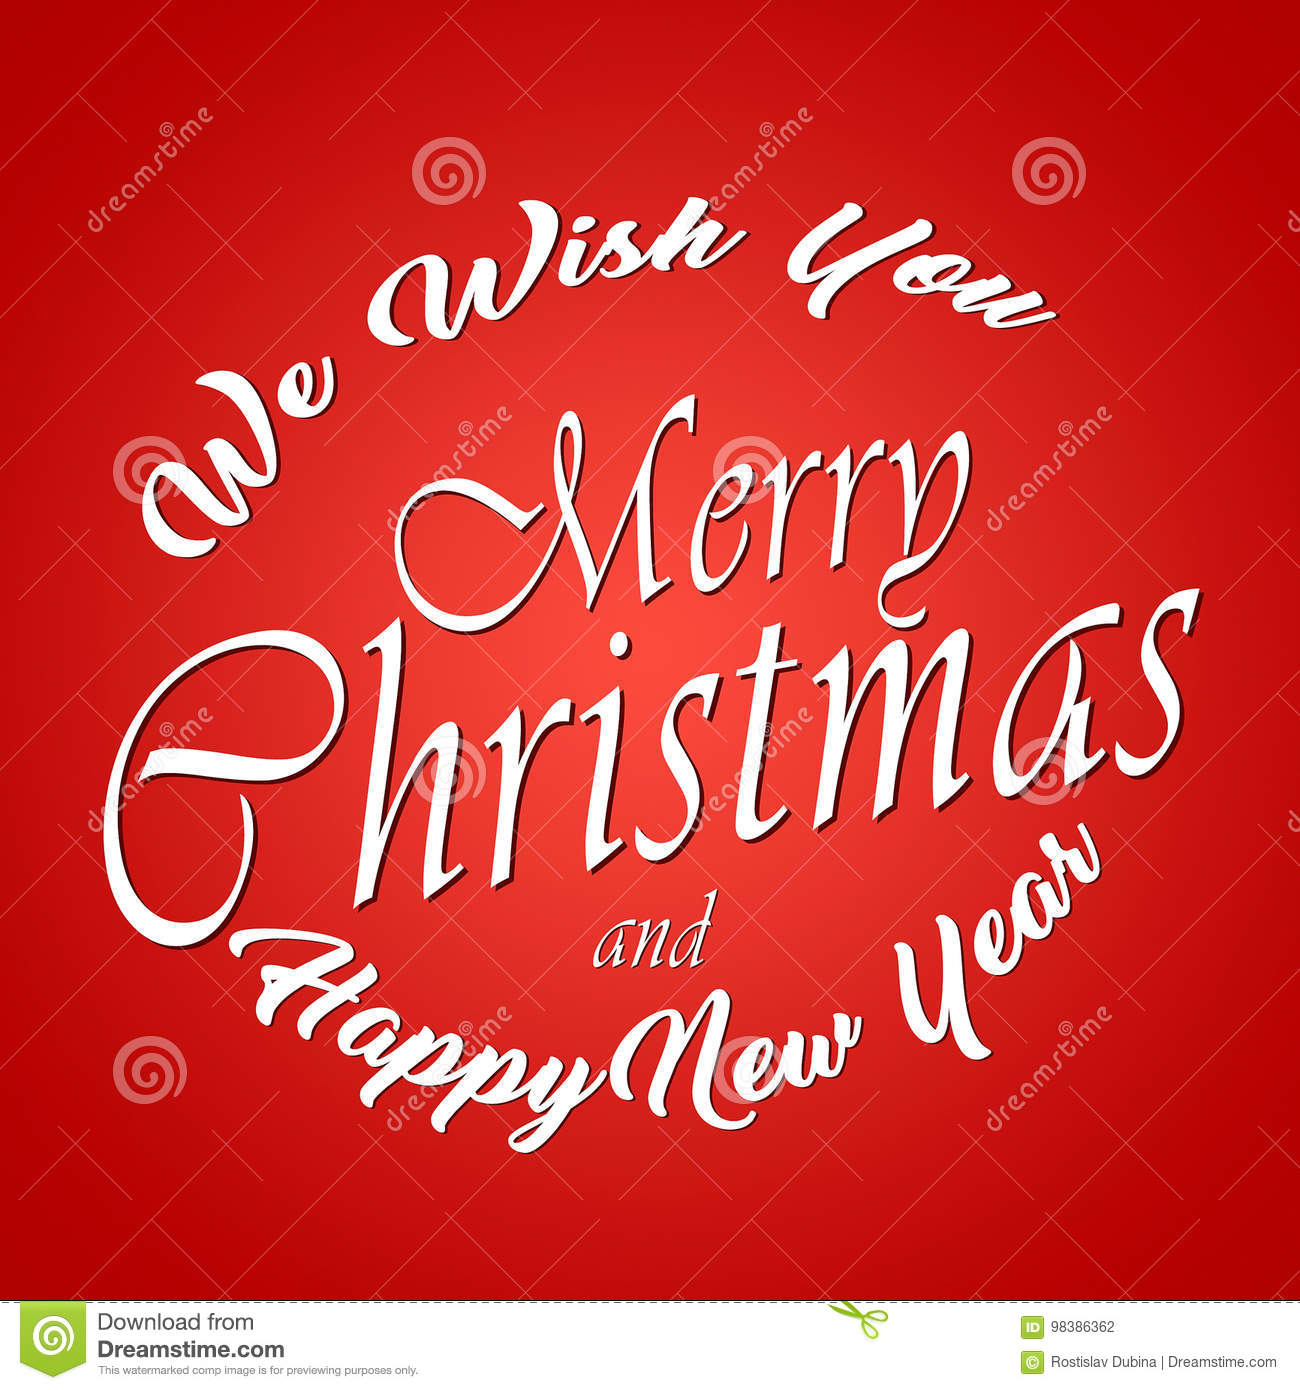 we wish you merry christmas and happy new year typographic background original design element